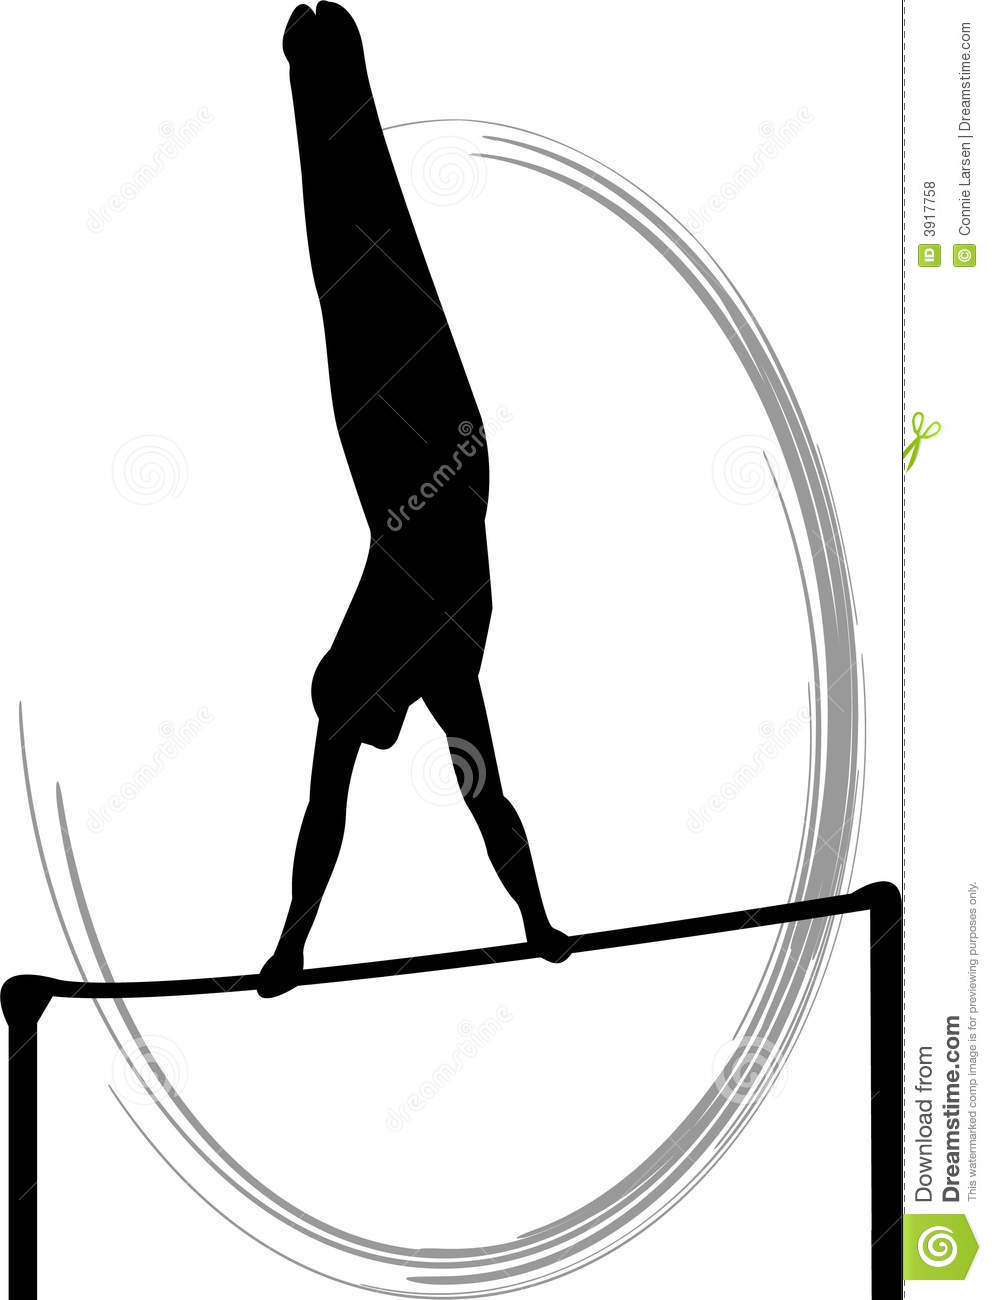 Men's Gymnastics Horizontal Bar Royalty Free Stock Photos.